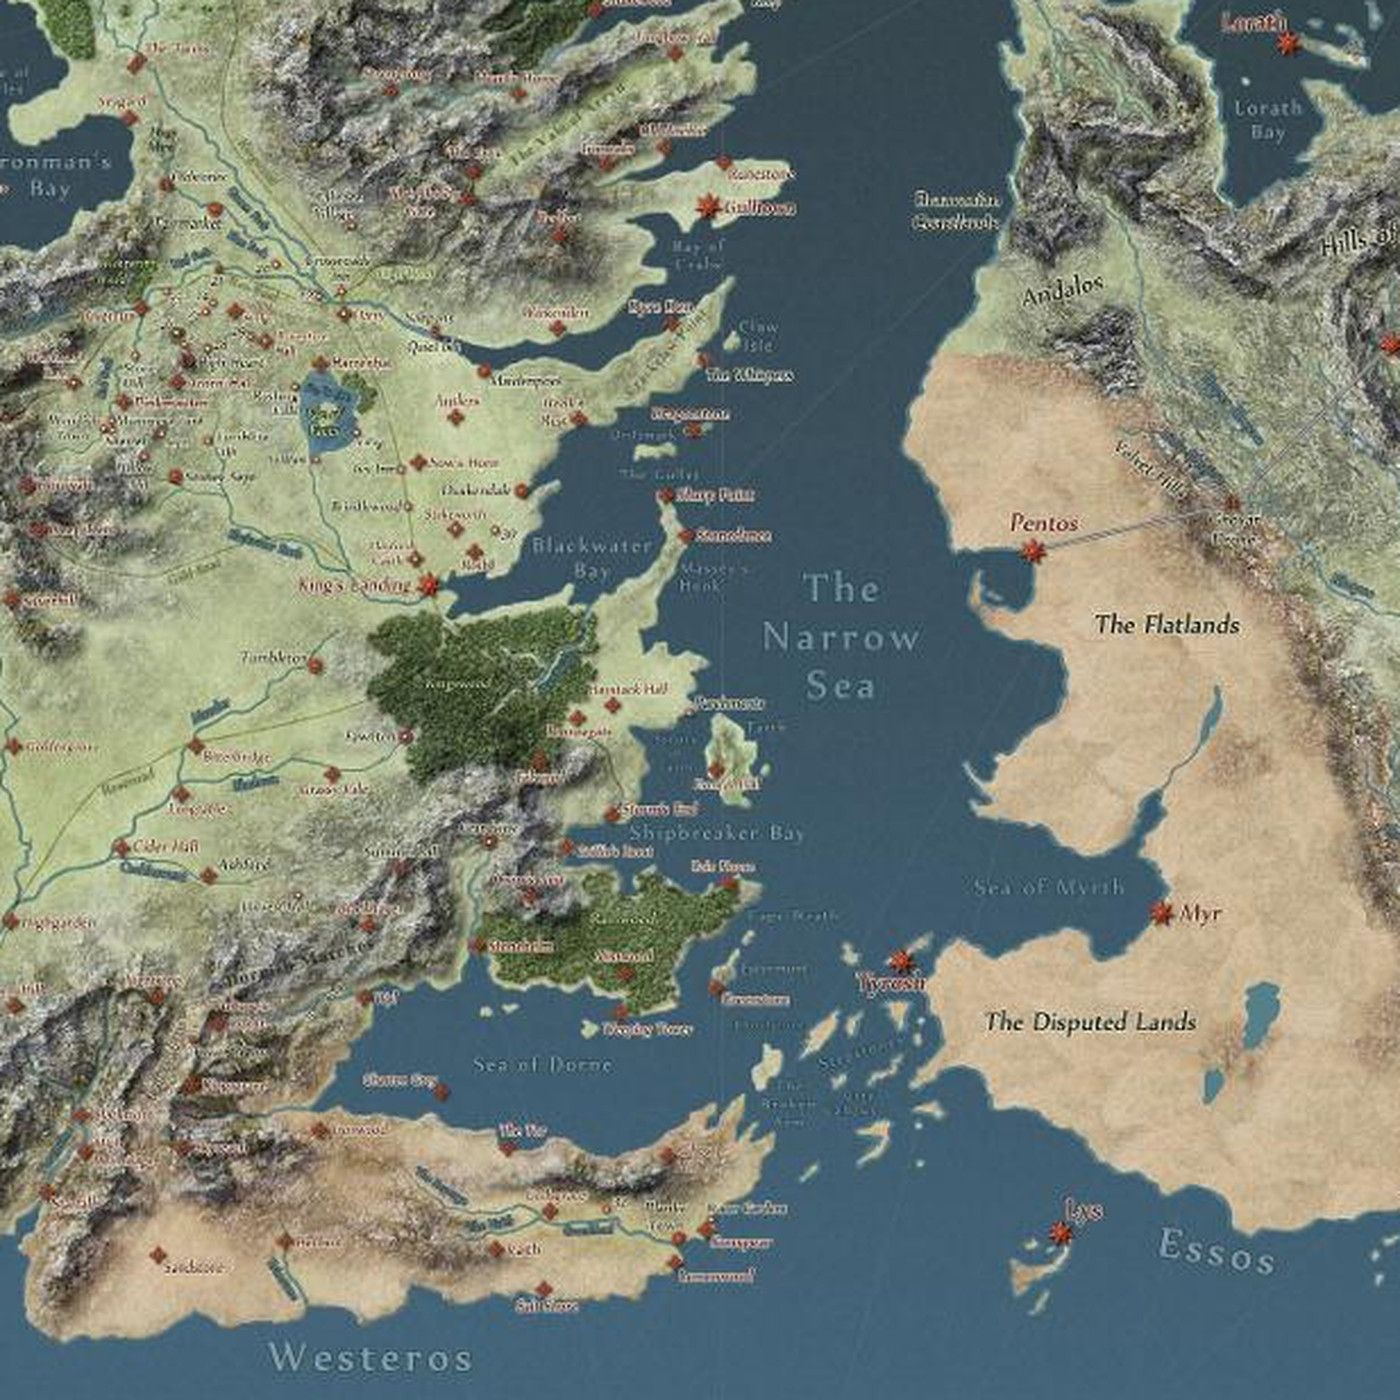 First Accurate Map Of The World.Interactive Game Of Thrones Map Will Make You An Expert On Westeros